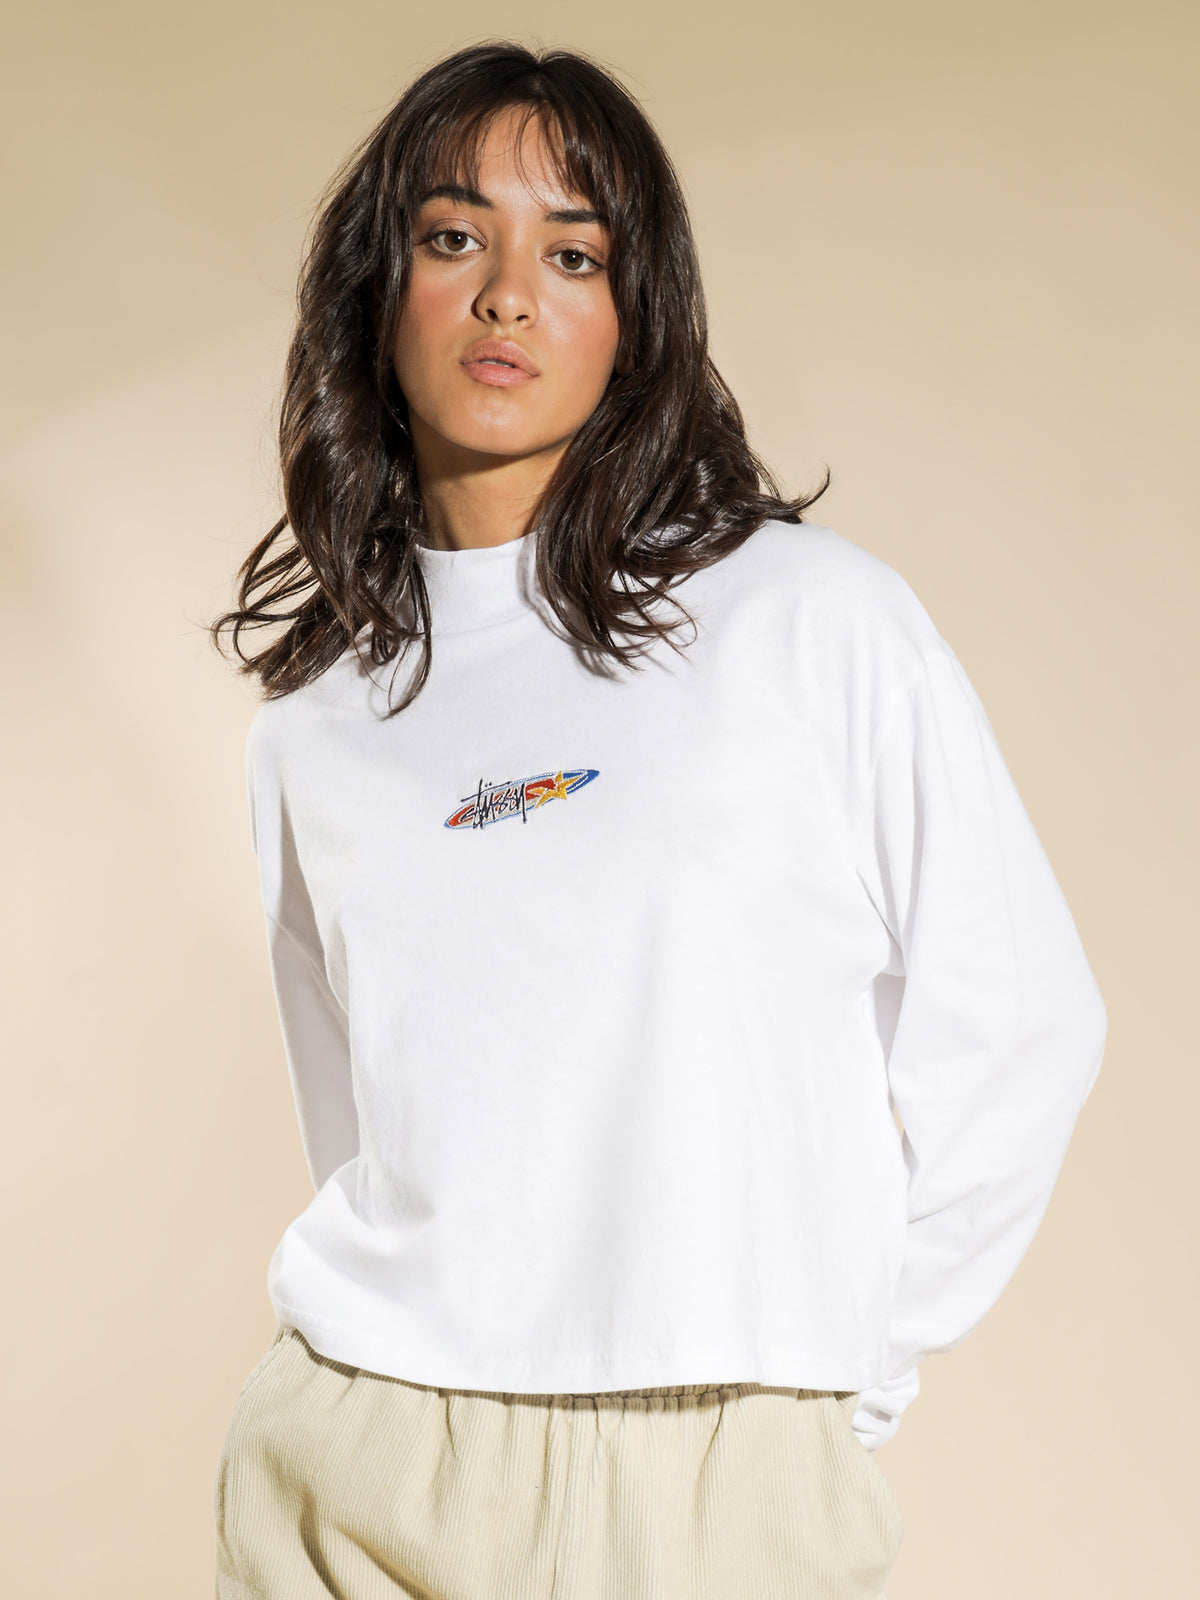 Maui Mock Neck Long Sleeve T-Shirt in White